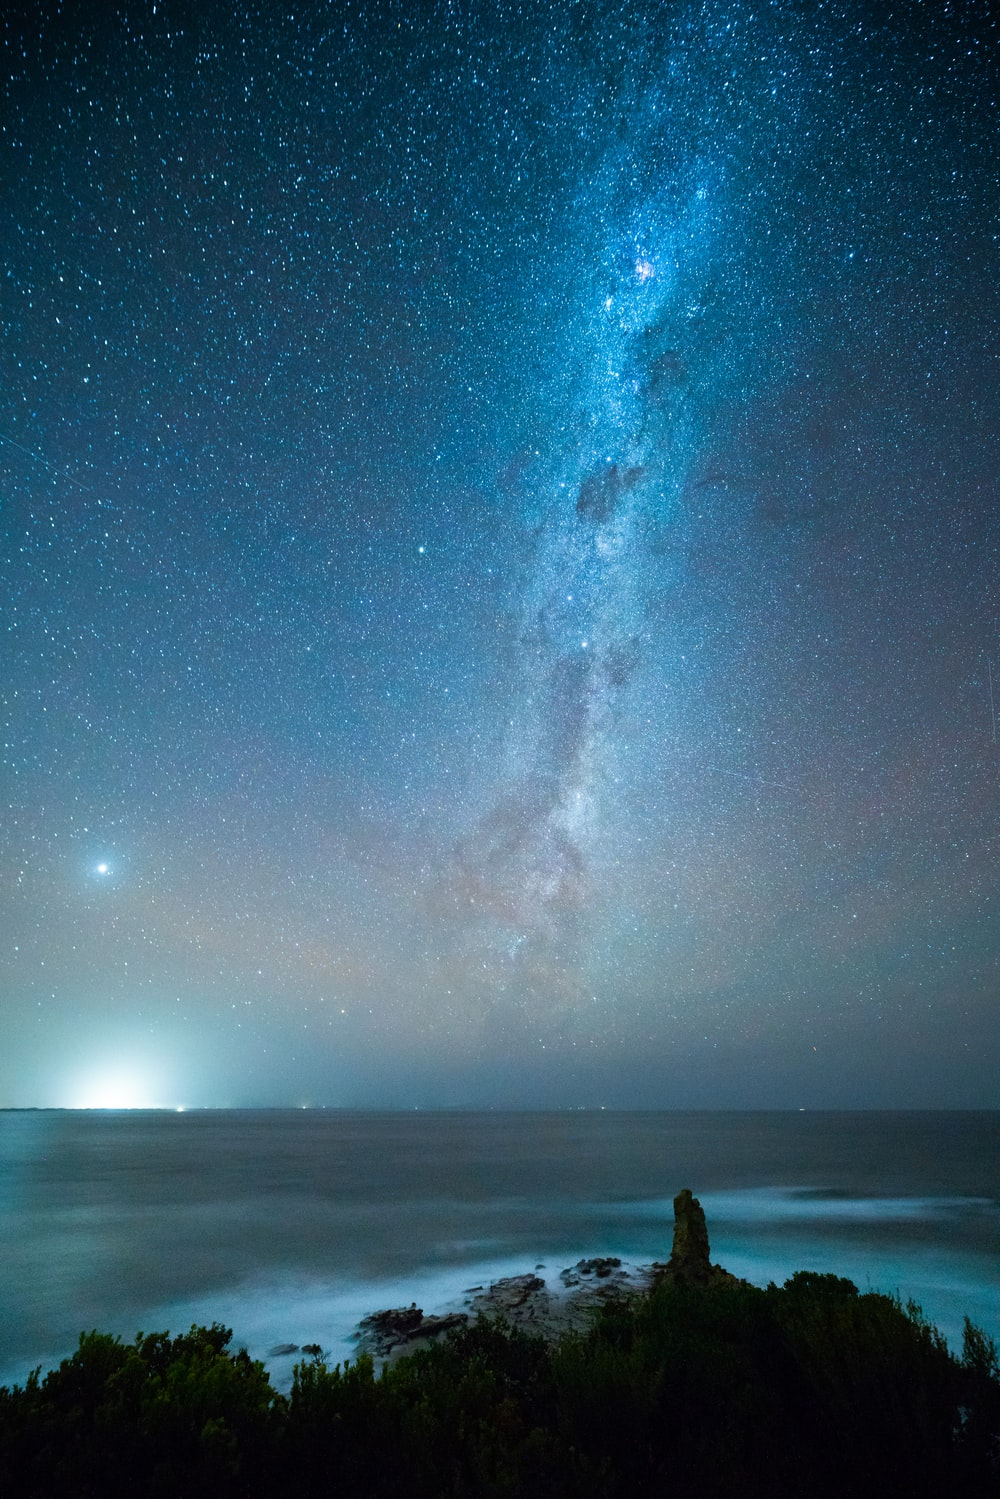 person standing on beach under starry night